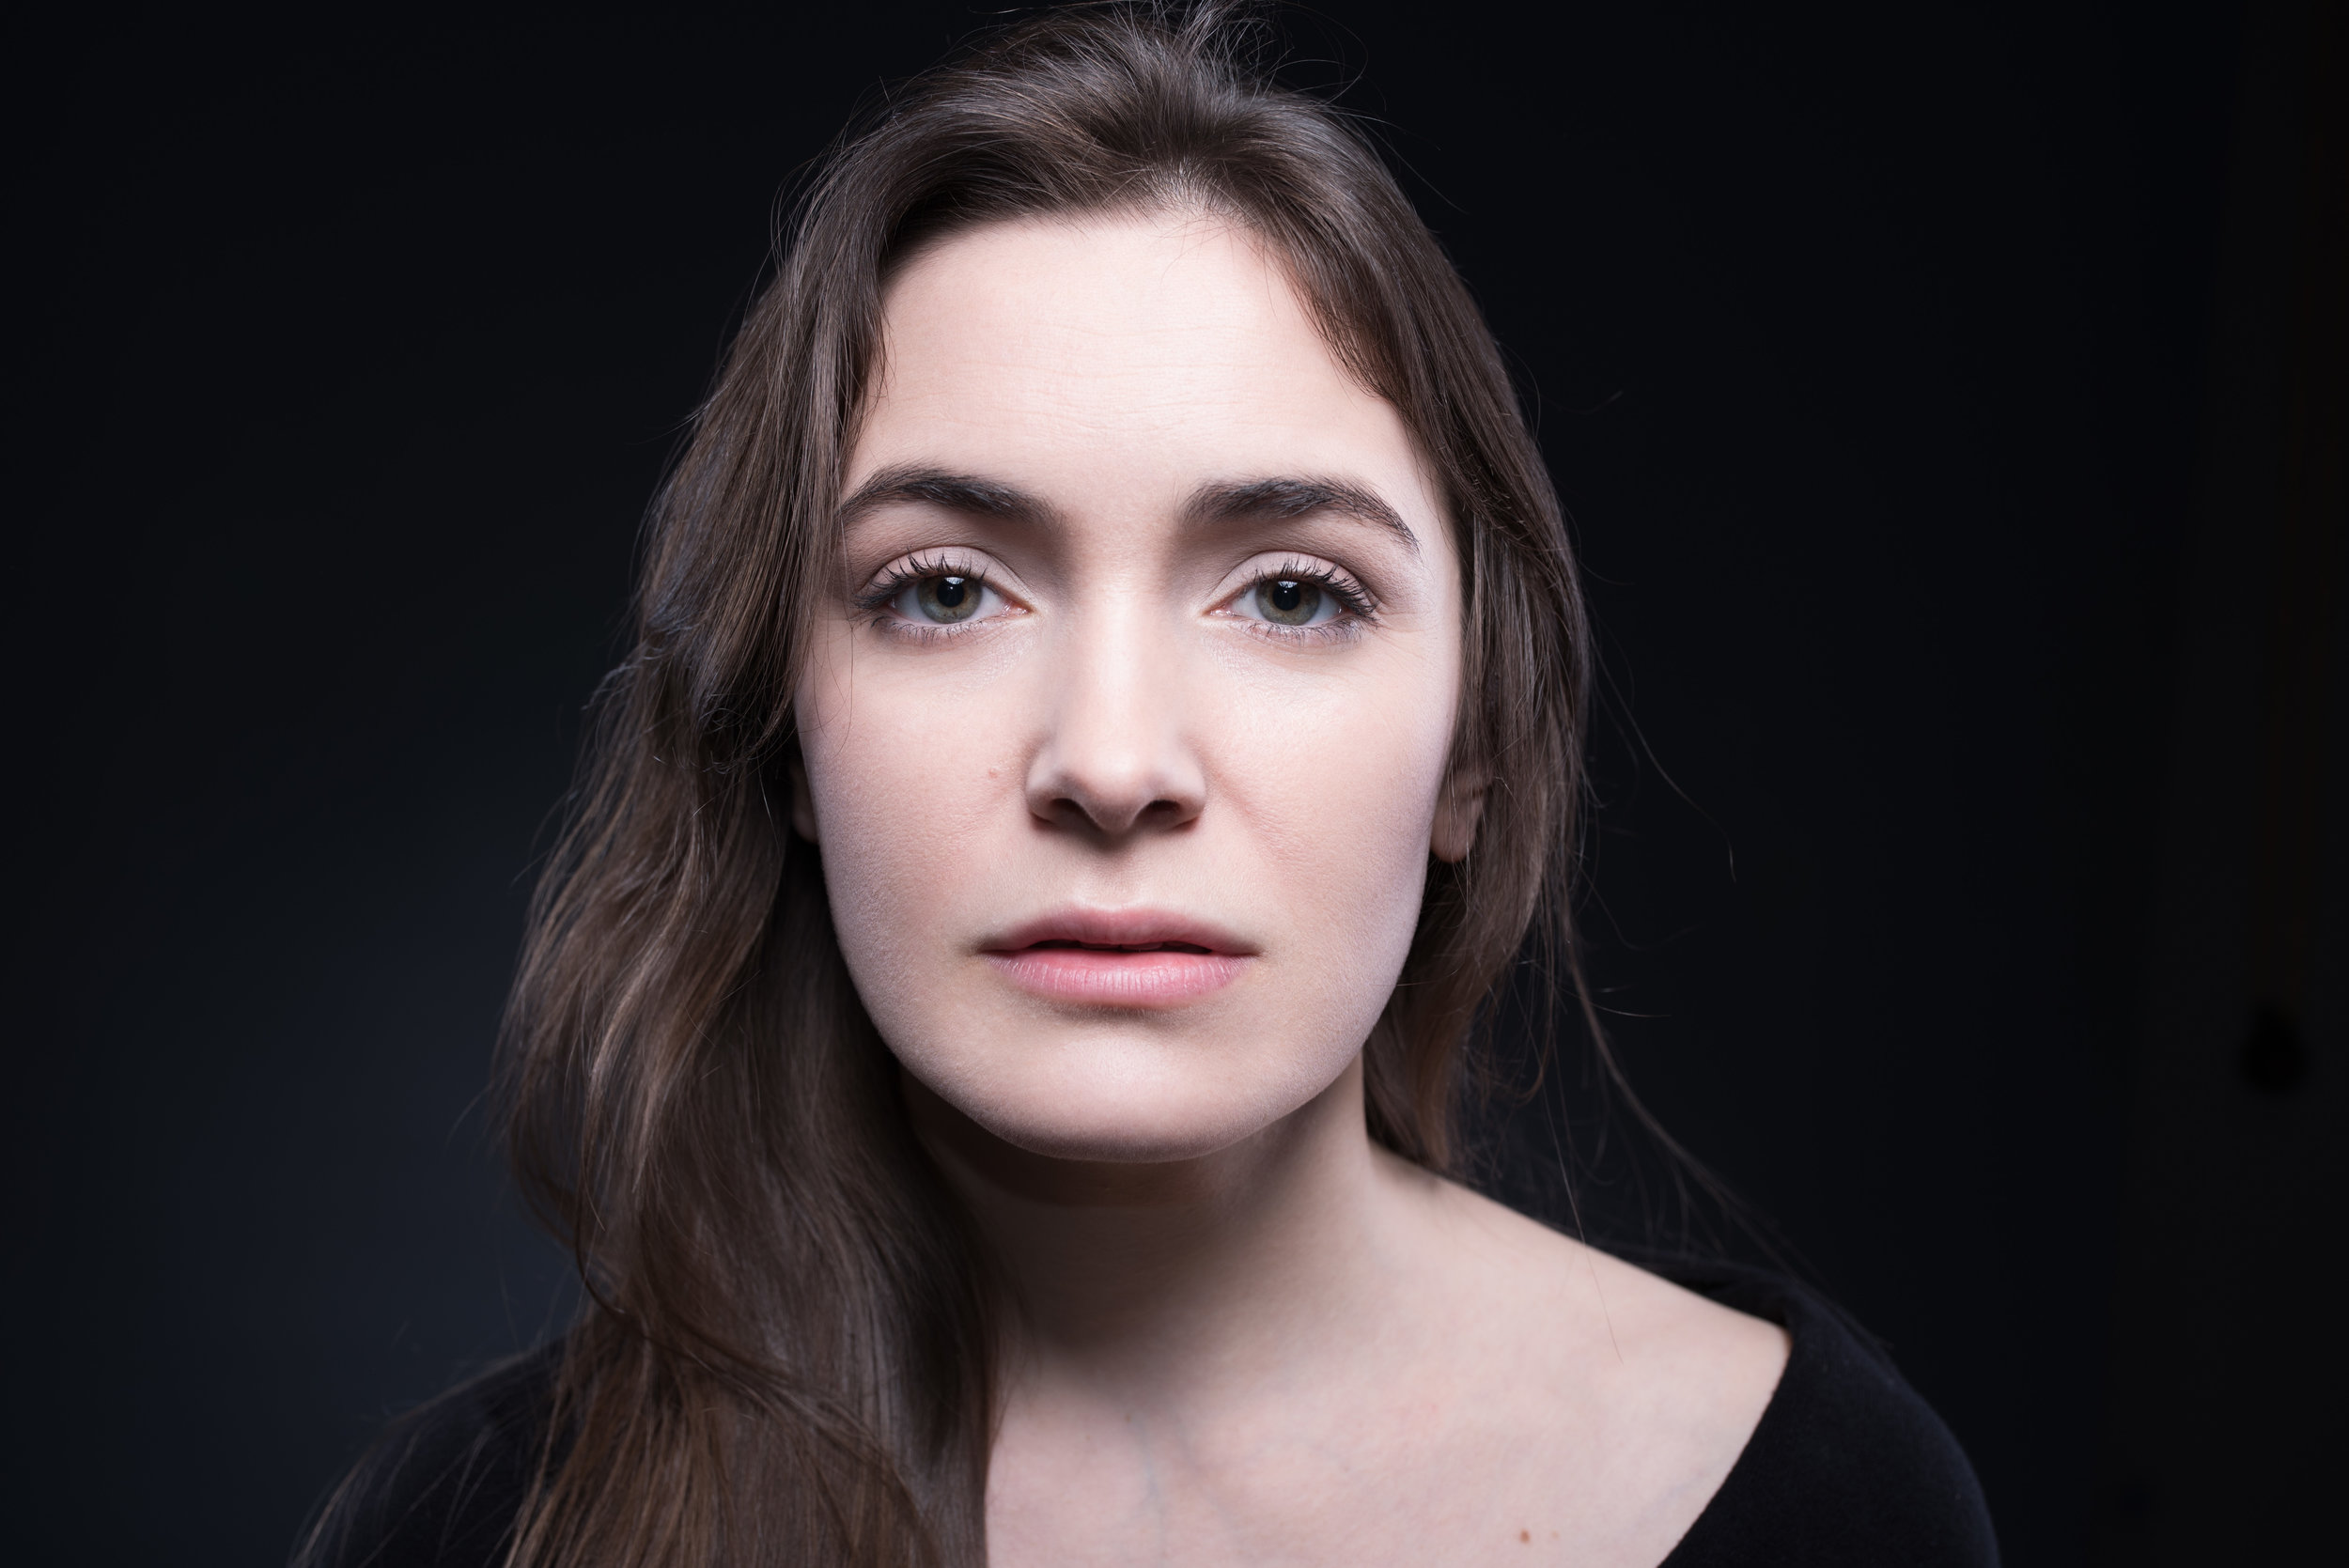 Dramaic headshot of a young actress Sarah Haváčová made by Tatiana Shalunova Headshots Prague.jpg